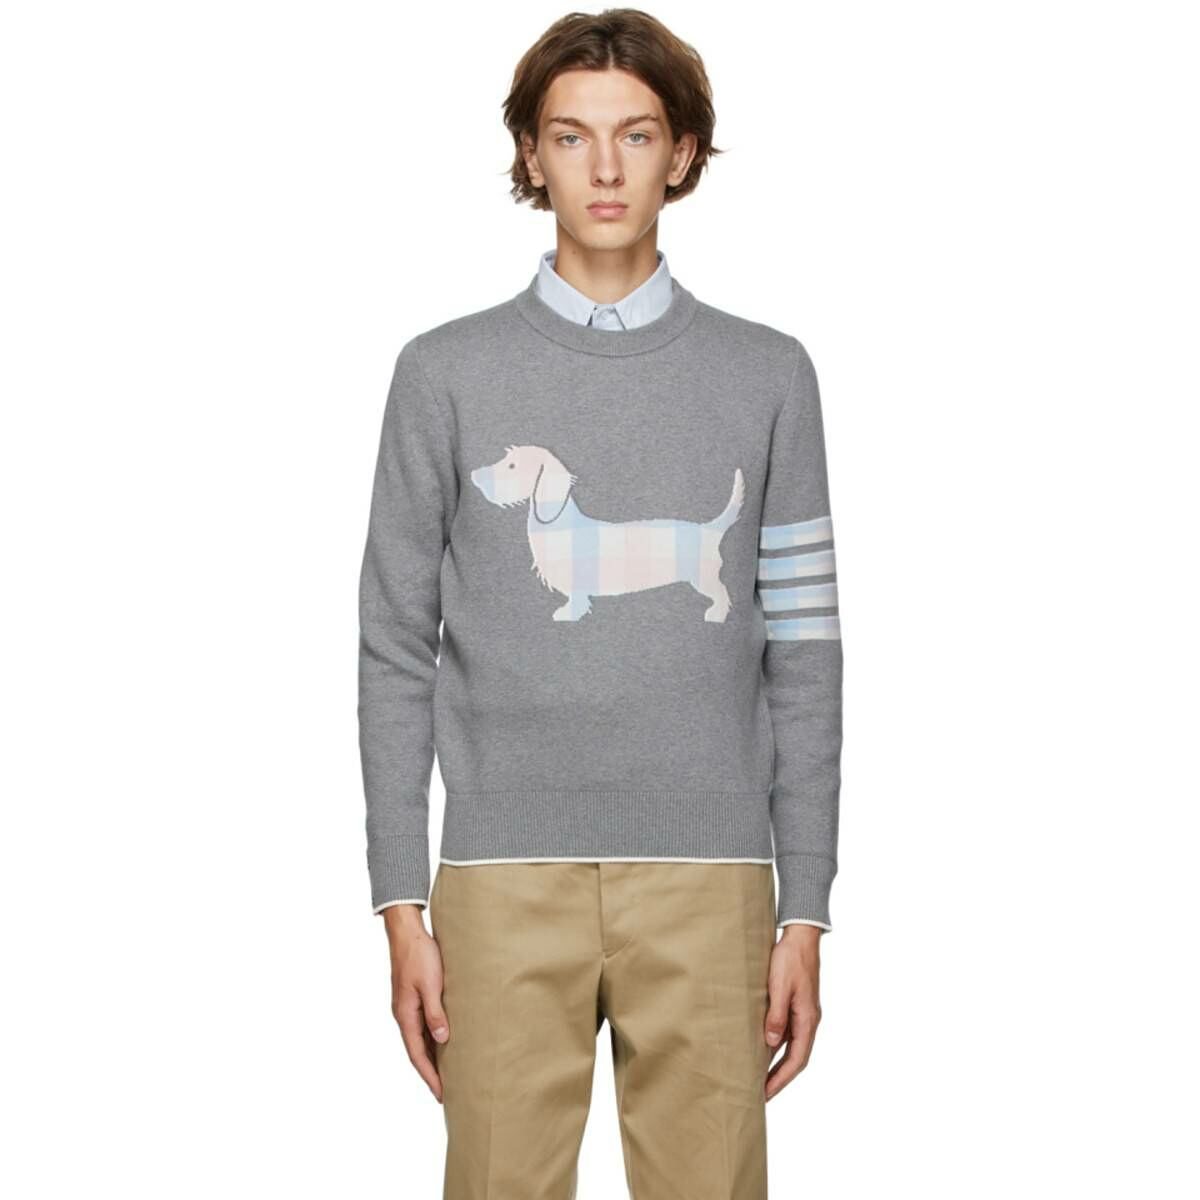 Thom Browne Grey Hector Icon Sweater Ssense USA MEN Men FASHION Mens KNITWEAR